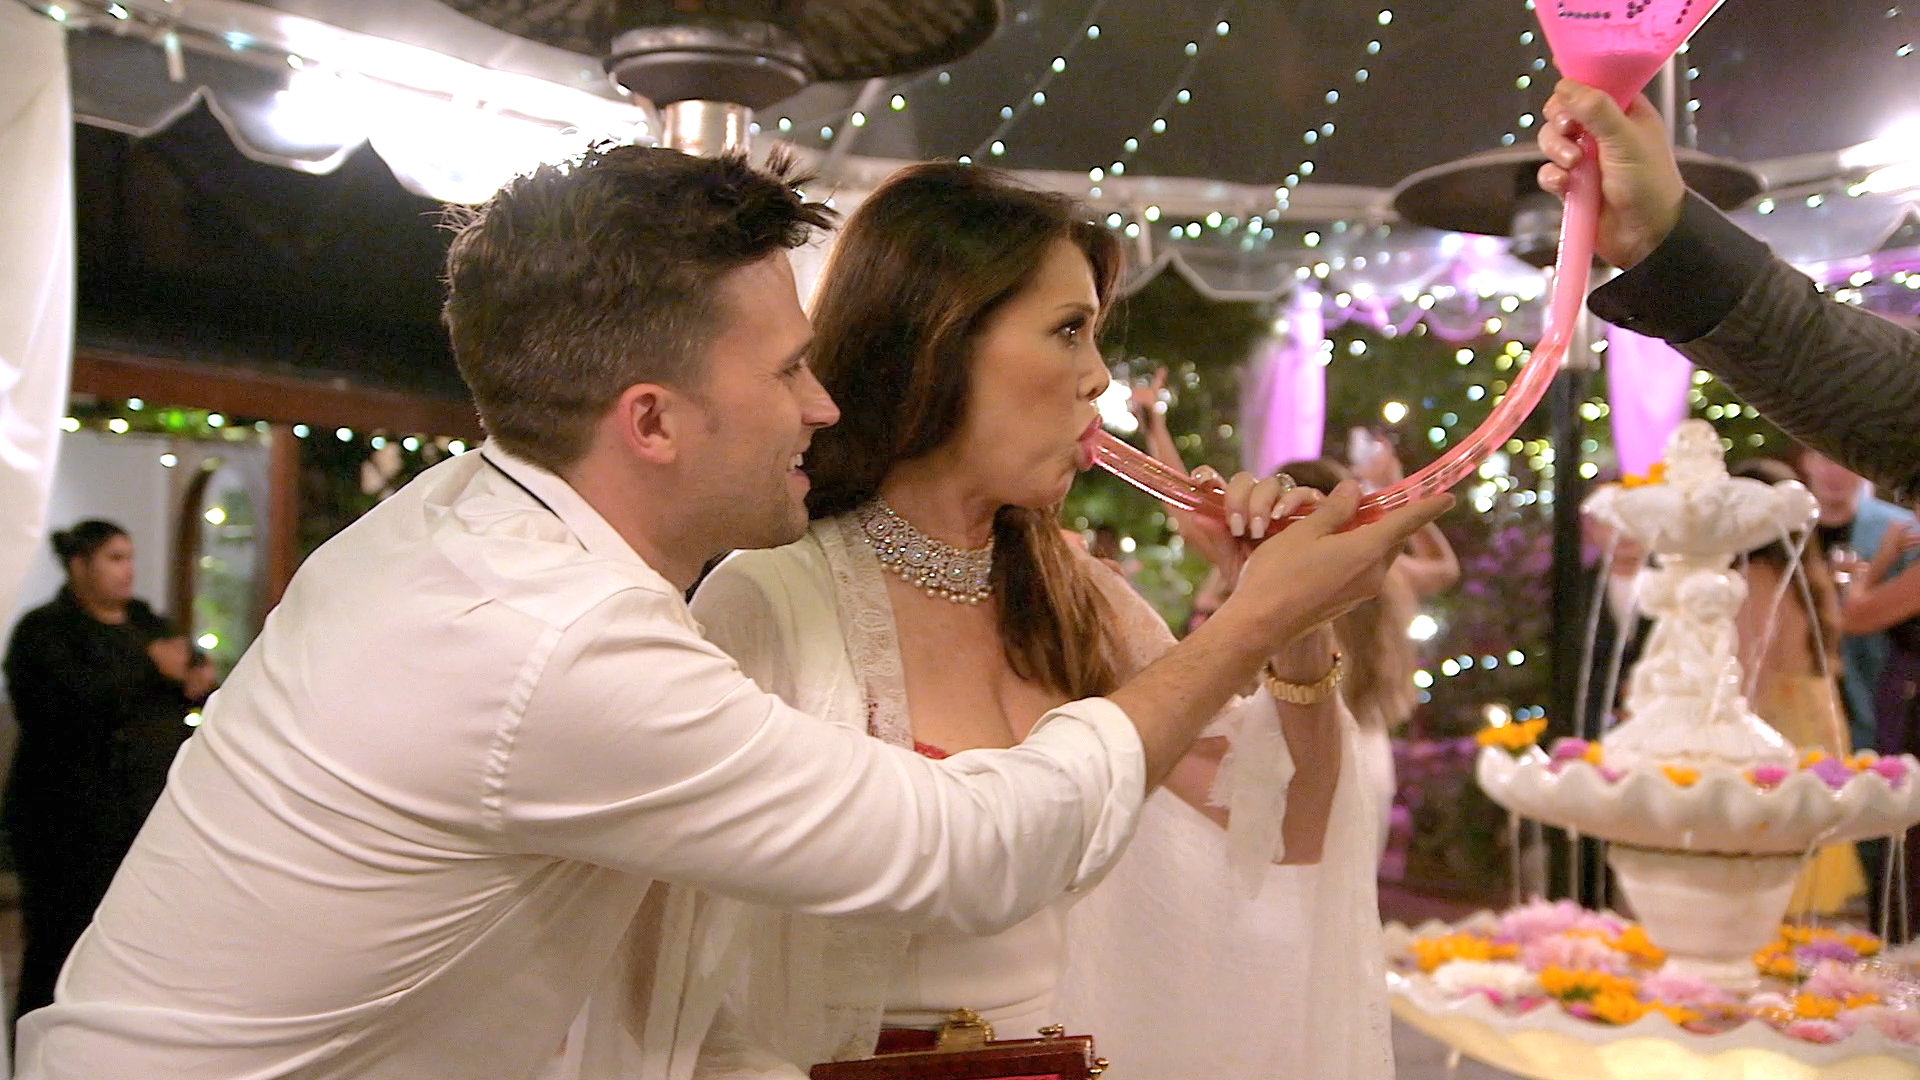 Lisa Vanderpump Leaves a Party the Only Way You Should...By Funneling a Beer!